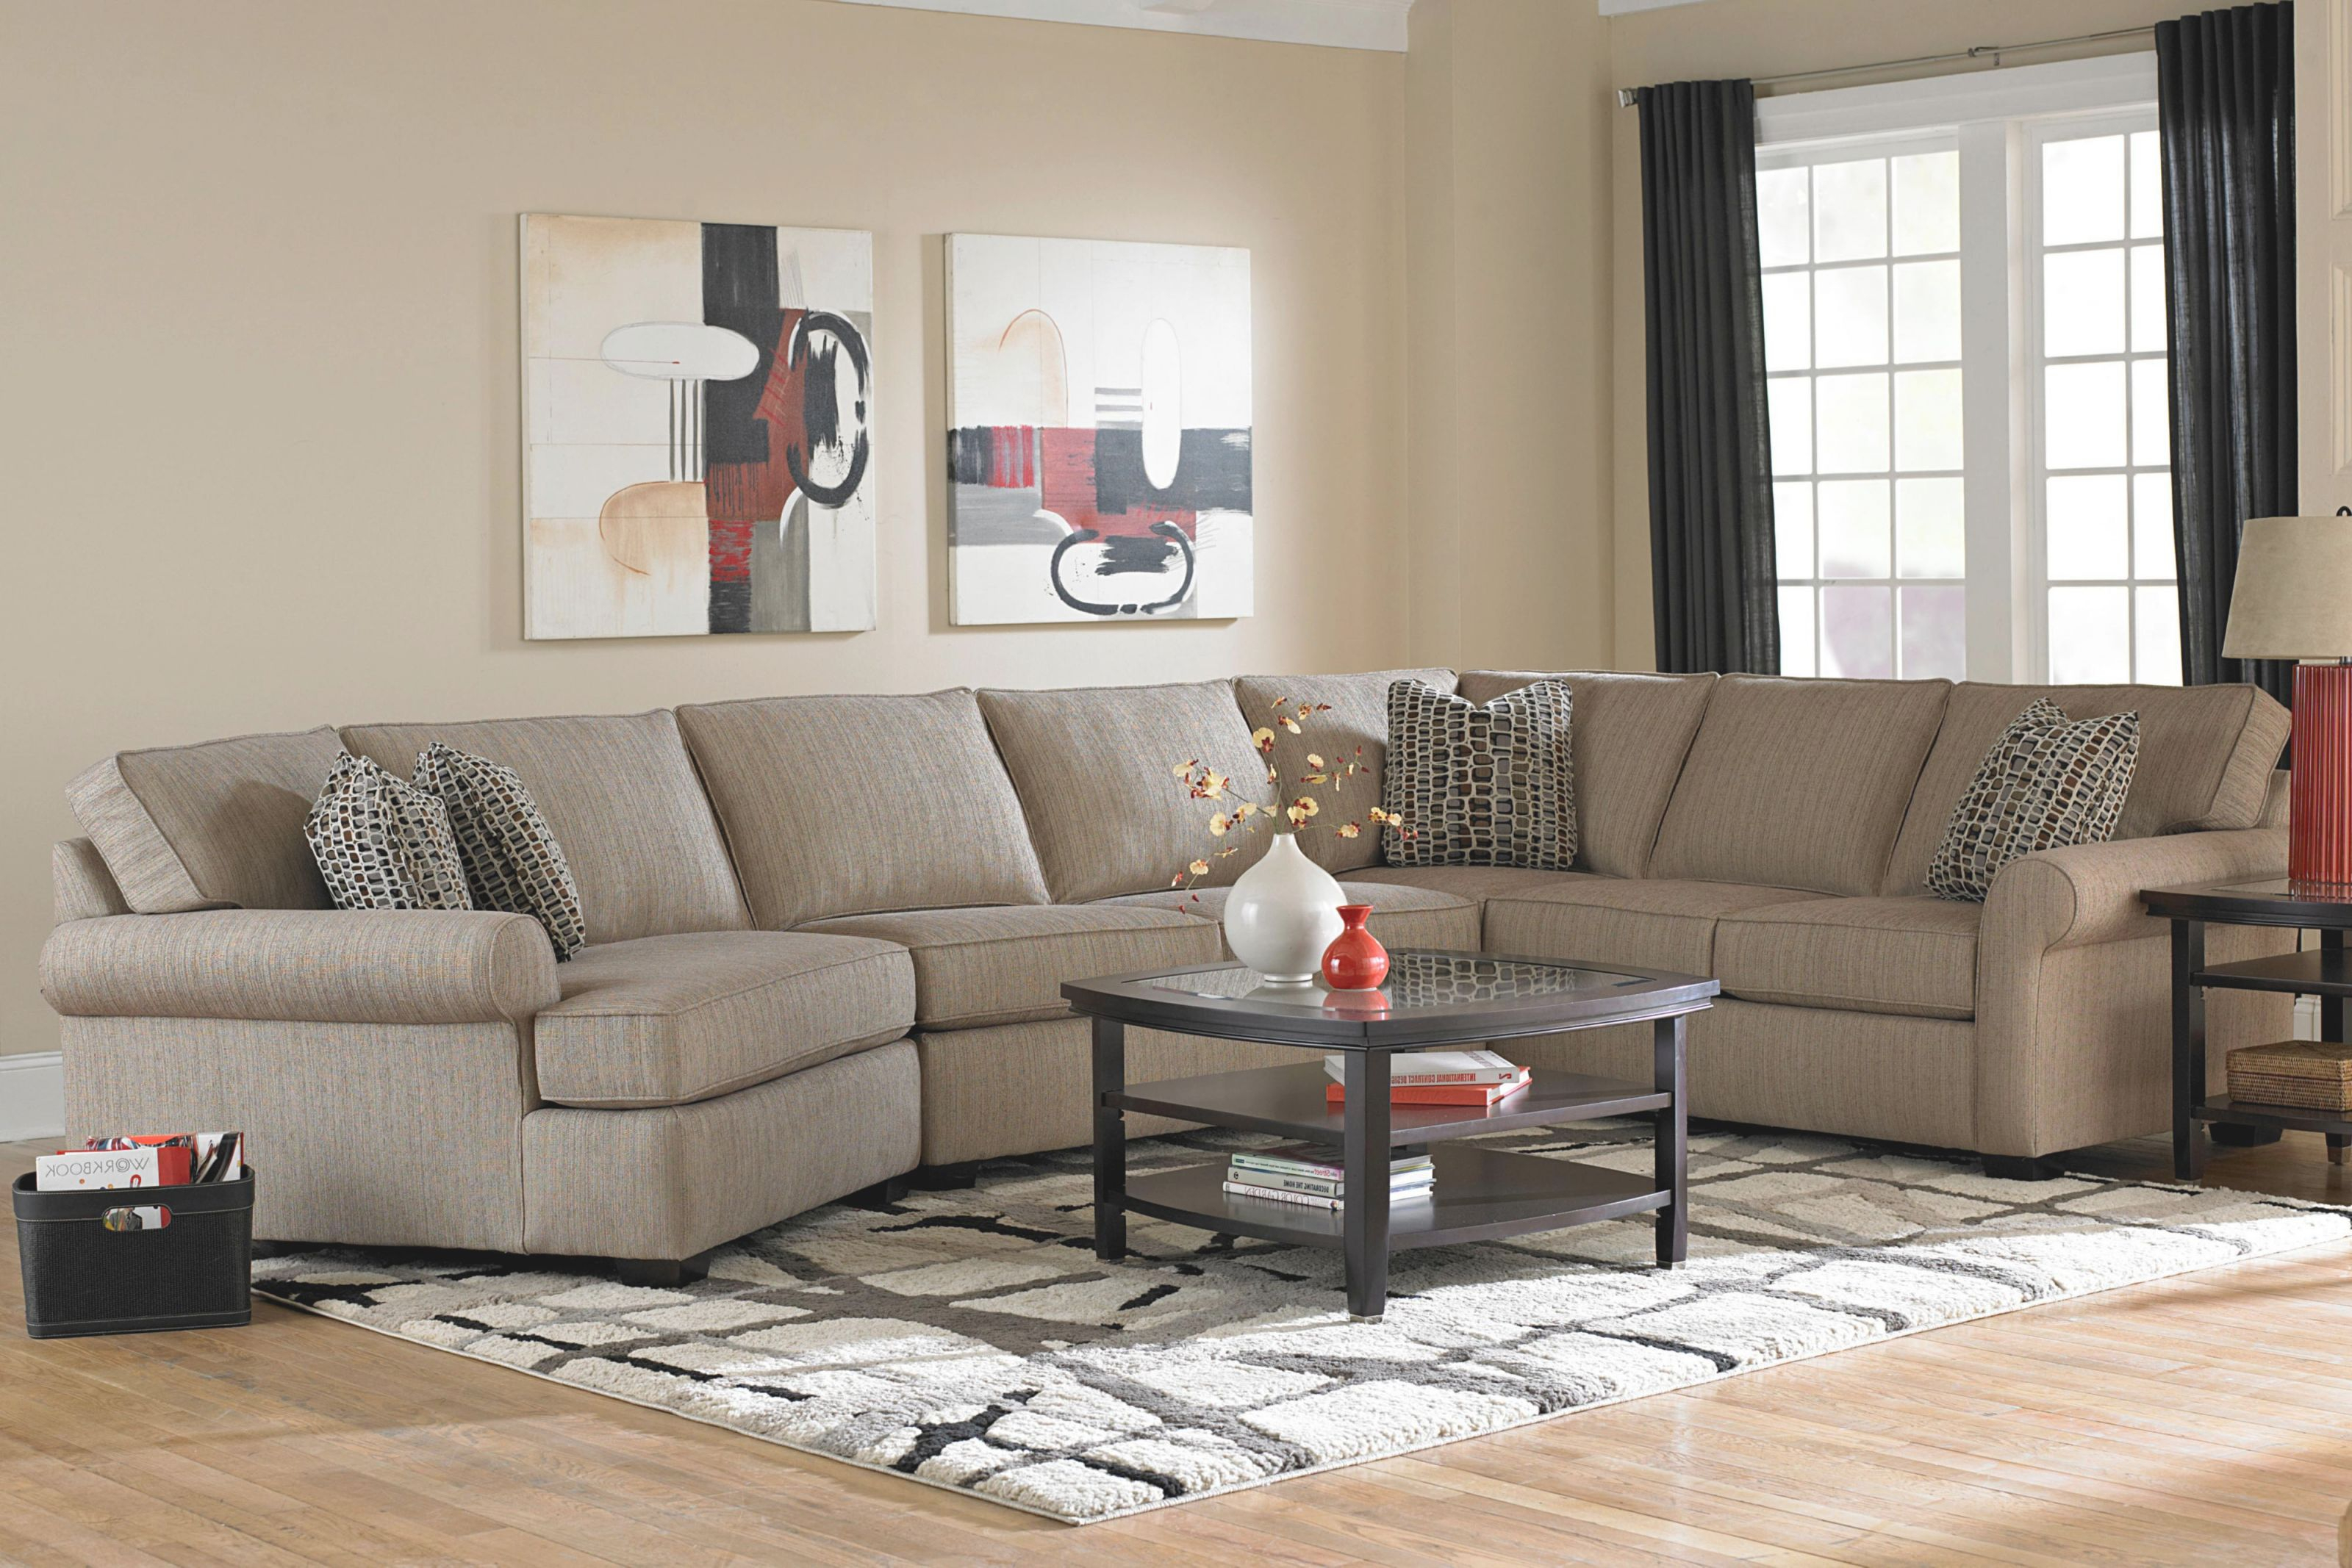 Kitchen Design : Raymour And Flanigan Living Room Sets inside Lovely Raymour And Flanigan Sectional Sofas